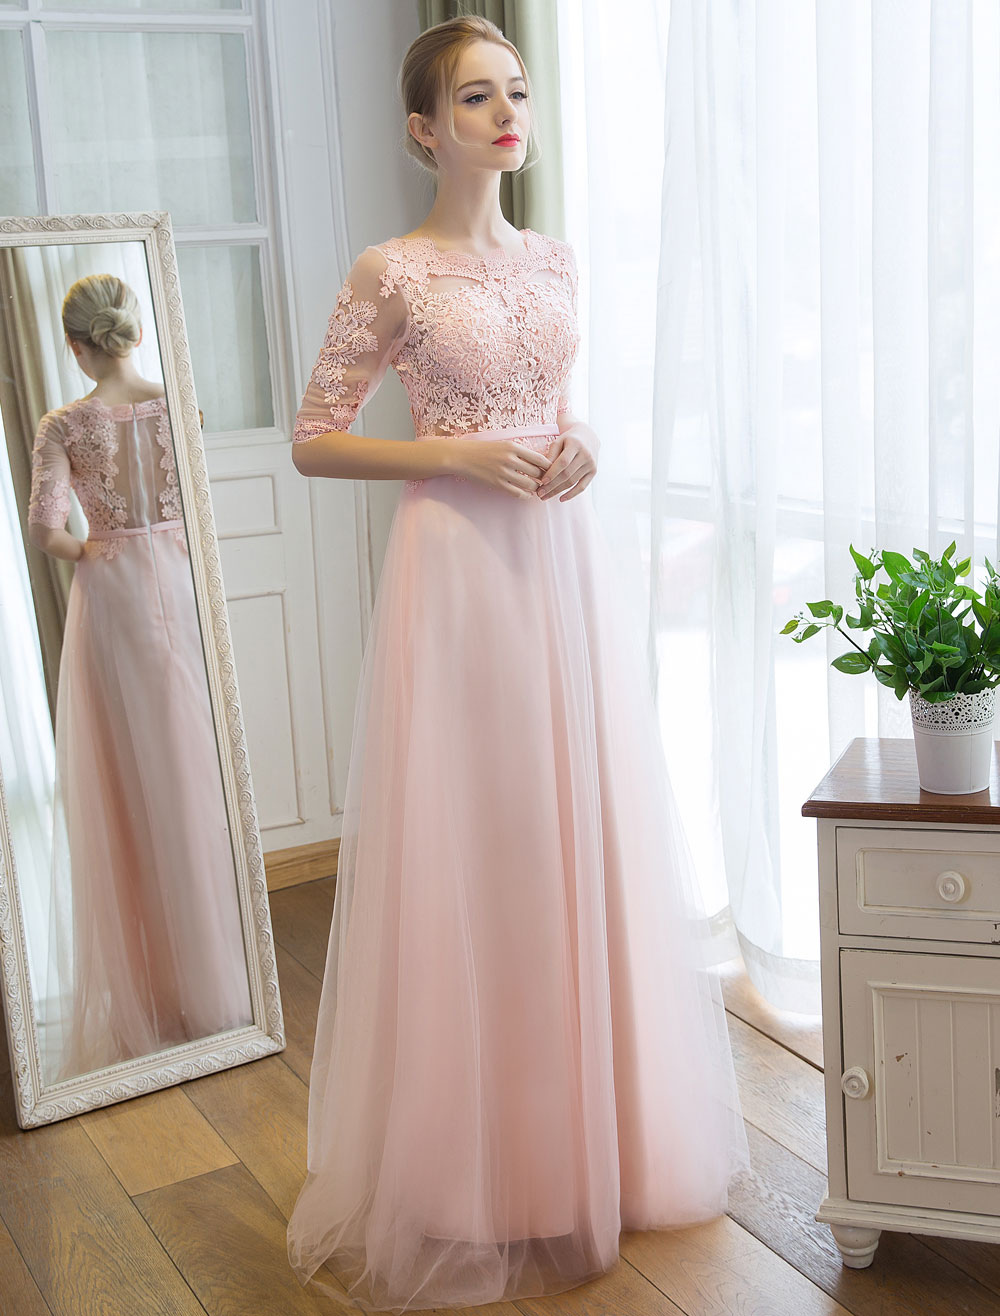 ... Prom Dresses Long Soft Pink Half Sleeve Lace Tulle Formal Evening Lace  Applique Maxi Party Dress. 12. 32%OFF. Color Soft Pink 3c0a805b5d5a